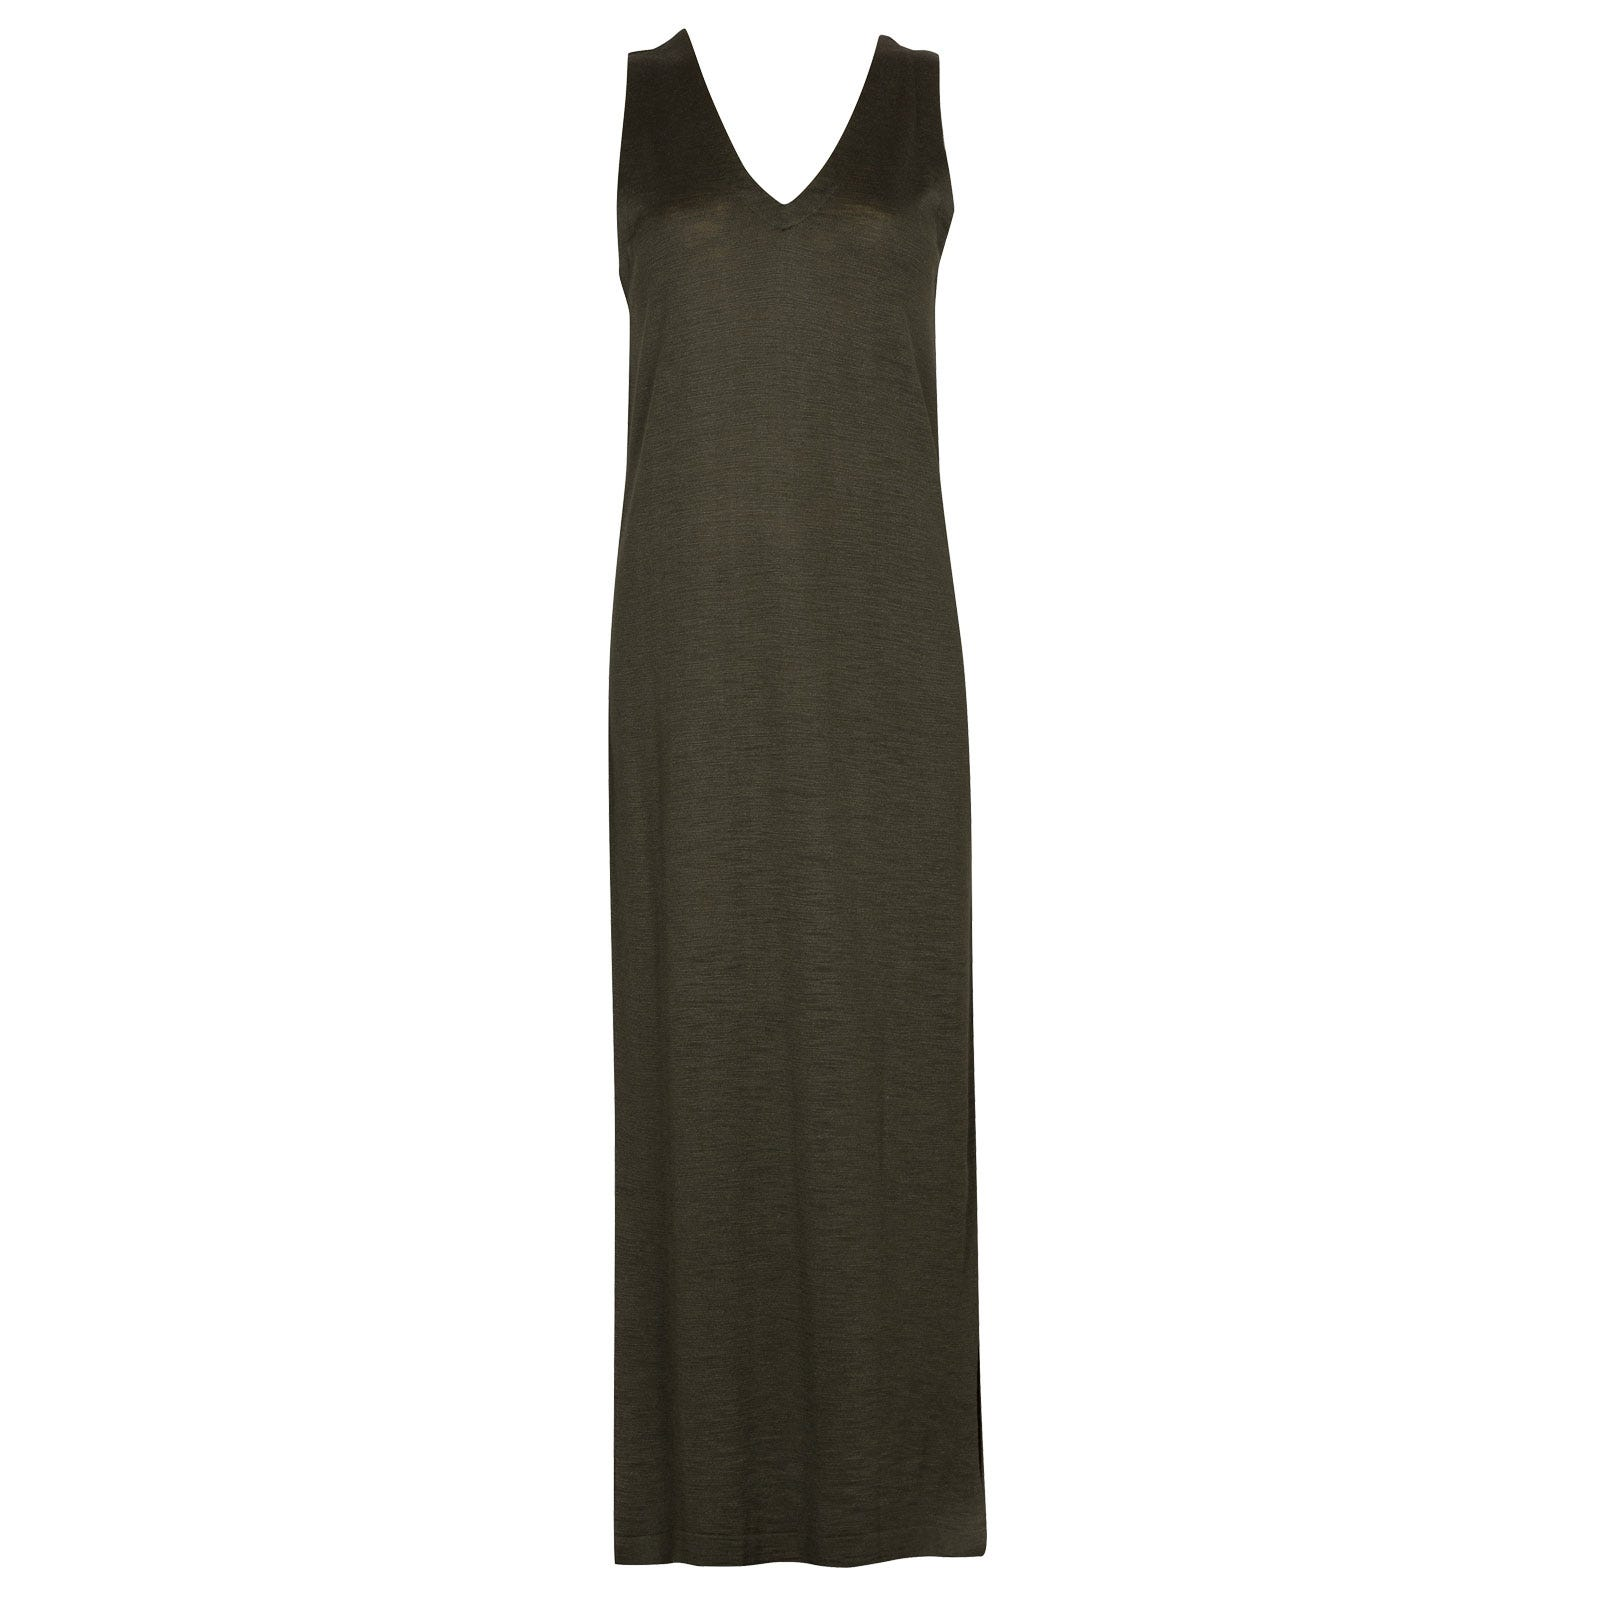 John Smedley Mila in Sepal Green Dress-XSM